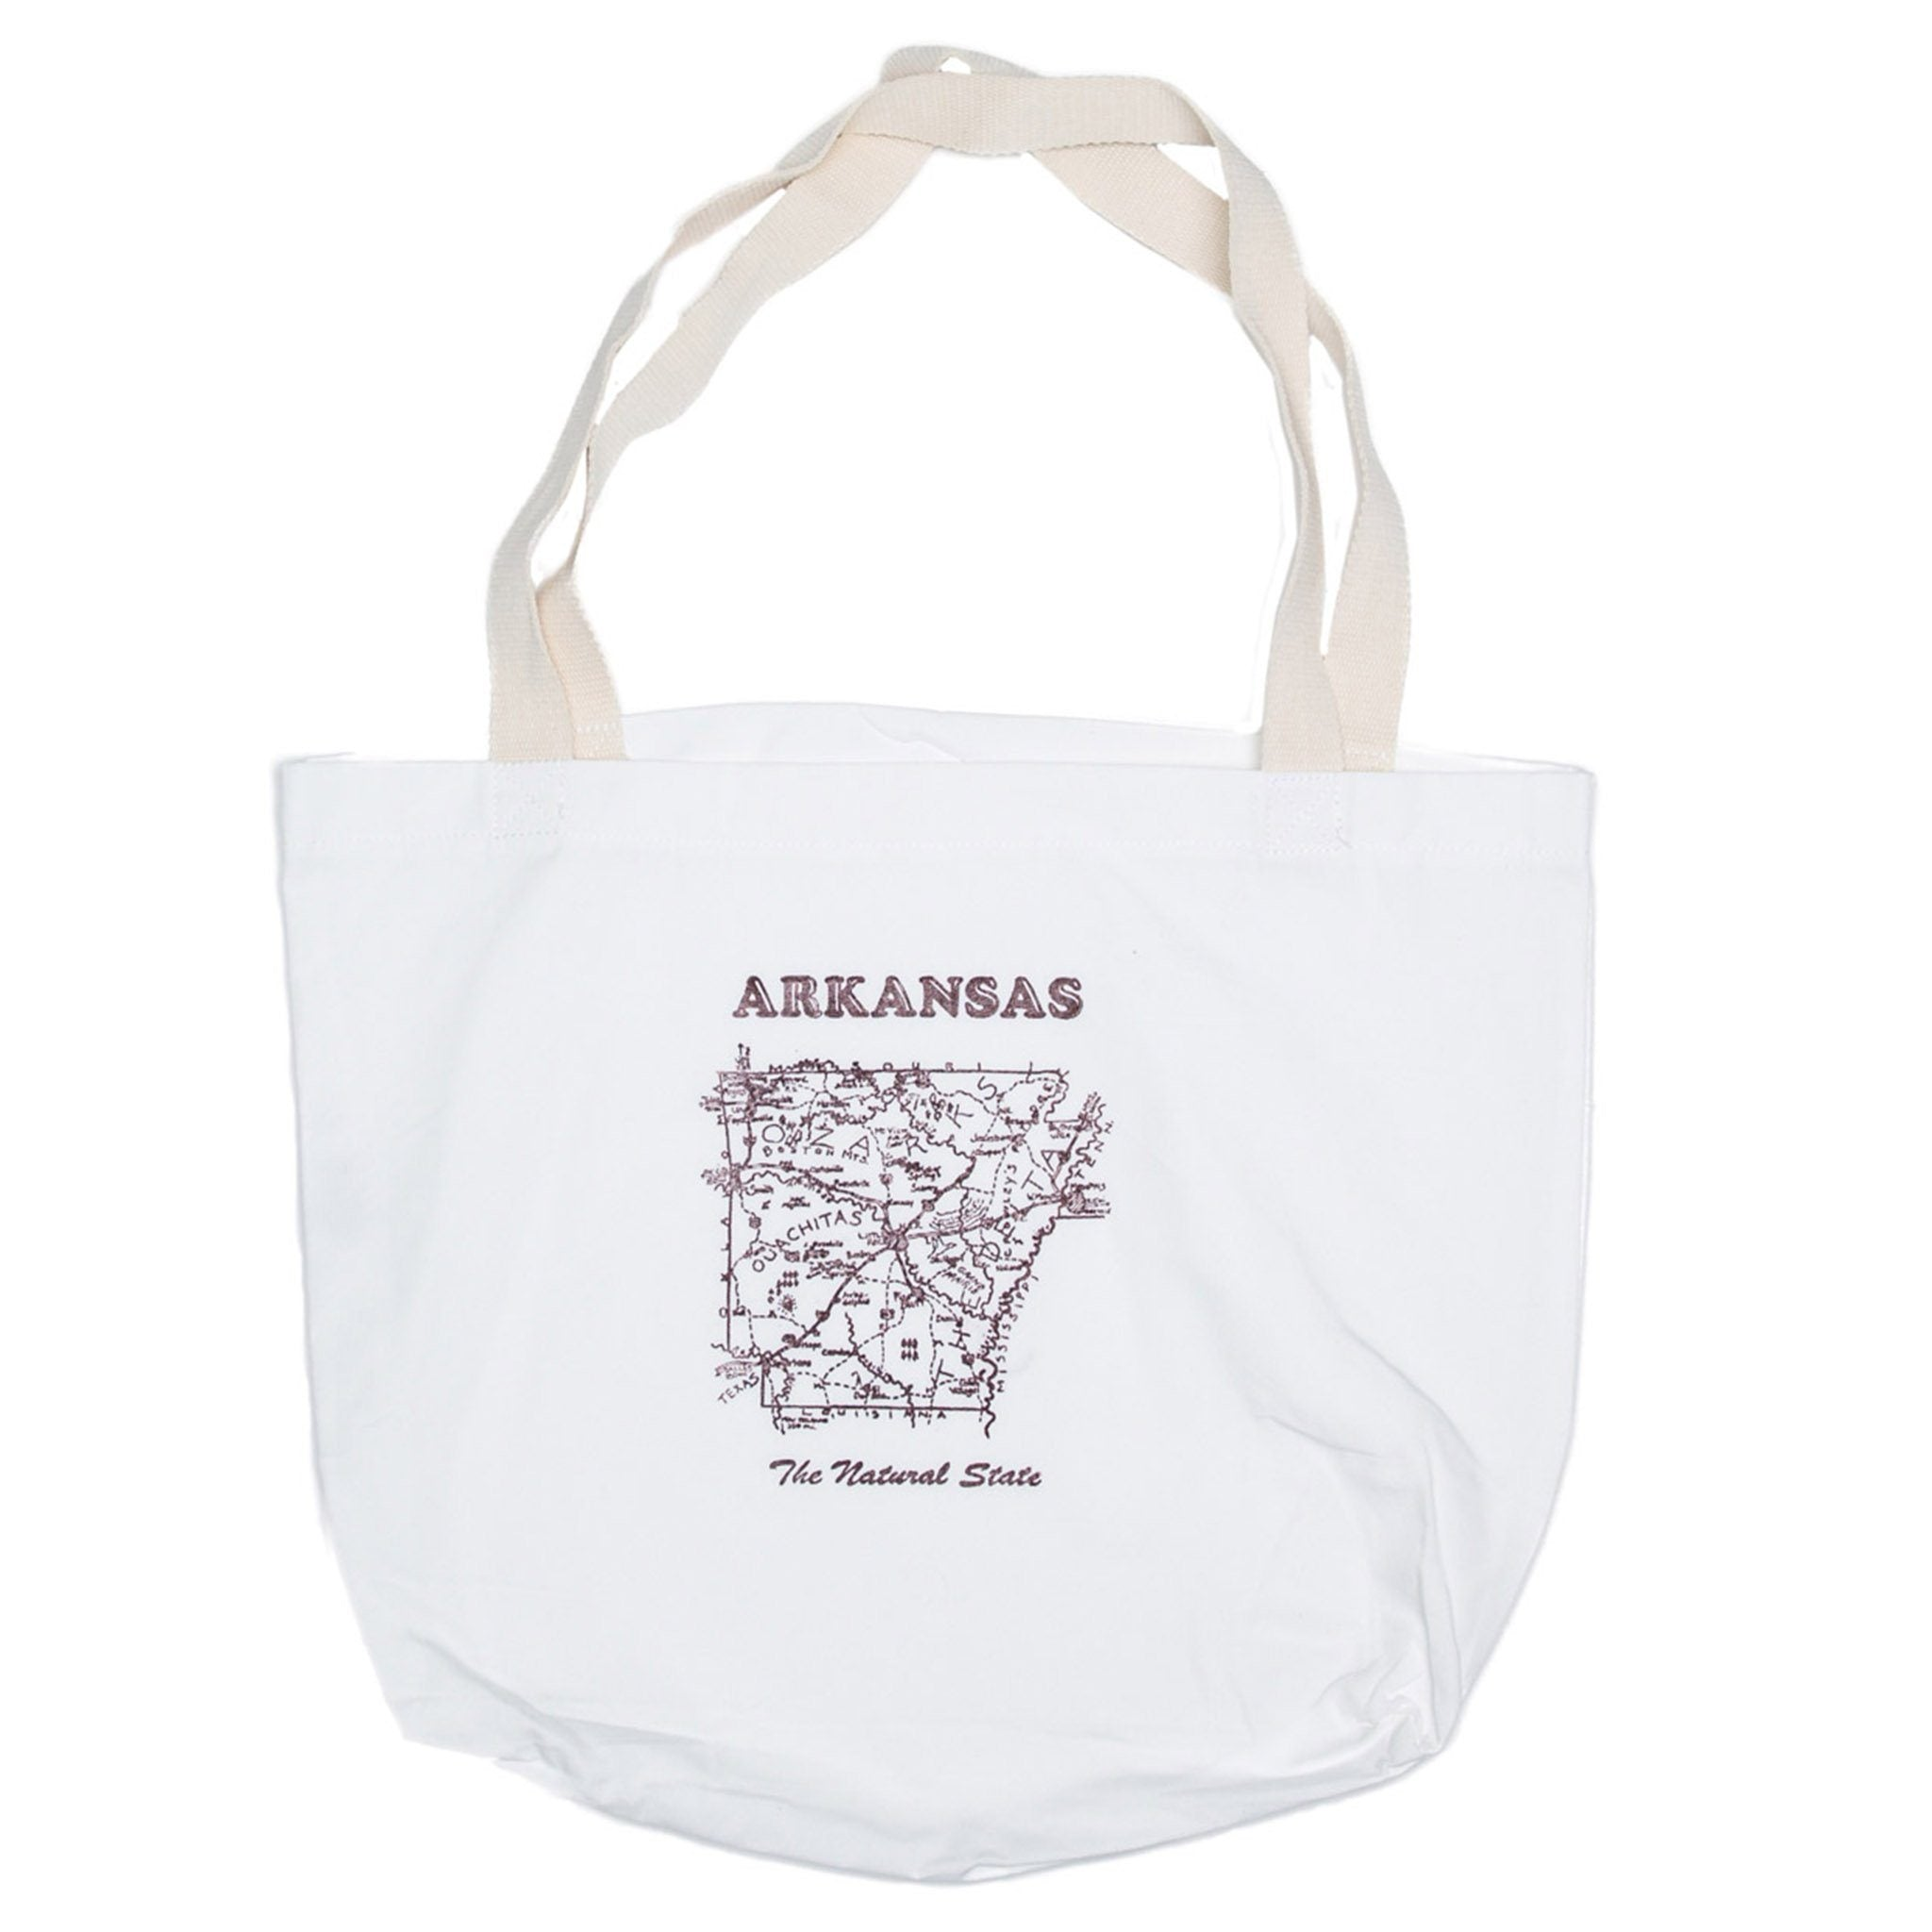 arkansas map tote bag. arkansas map tote bag – fayettechill clothing company